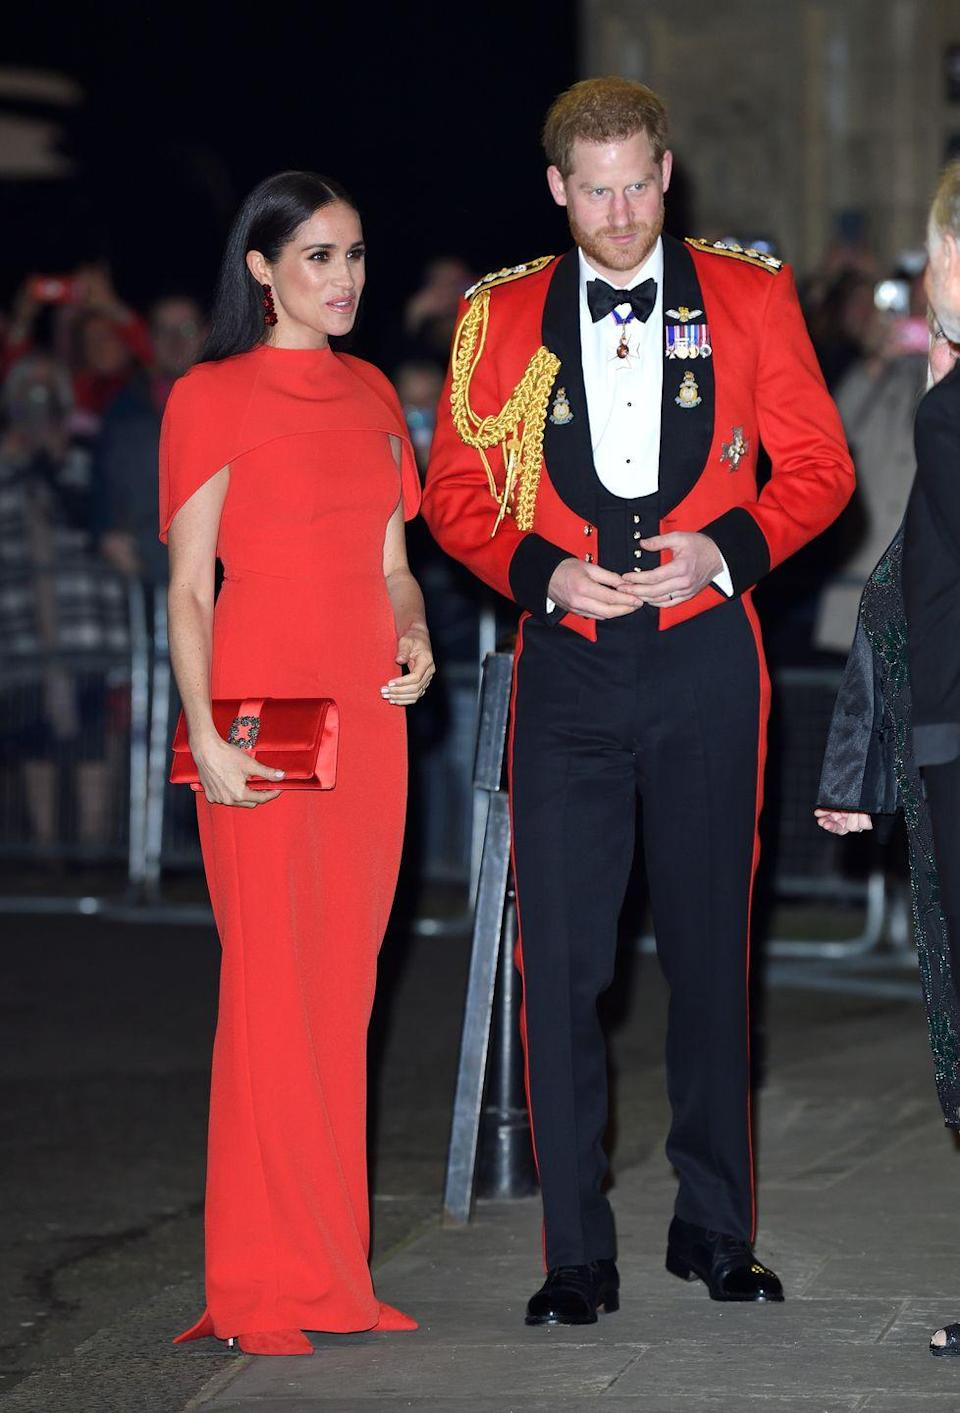 """<p><a href=""""https://www.townandcountrymag.com/society/tradition/a31262662/meghan-markle-red-gown-mountbatten-music-festival-photos/"""" rel=""""nofollow noopener"""" target=""""_blank"""" data-ylk=""""slk:Meghan attended the Mountbatten Music Festival alongside Prince Harry"""" class=""""link rapid-noclick-resp"""">Meghan attended the Mountbatten Music Festival alongside Prince Harry</a>, wearing a chic all-red look. The dress was reportedly from Safiyaa, which the Duchess wore with Aquazzura shoes, a Manolo Blahnik clutch, and Simone Rocha earrings. </p>"""